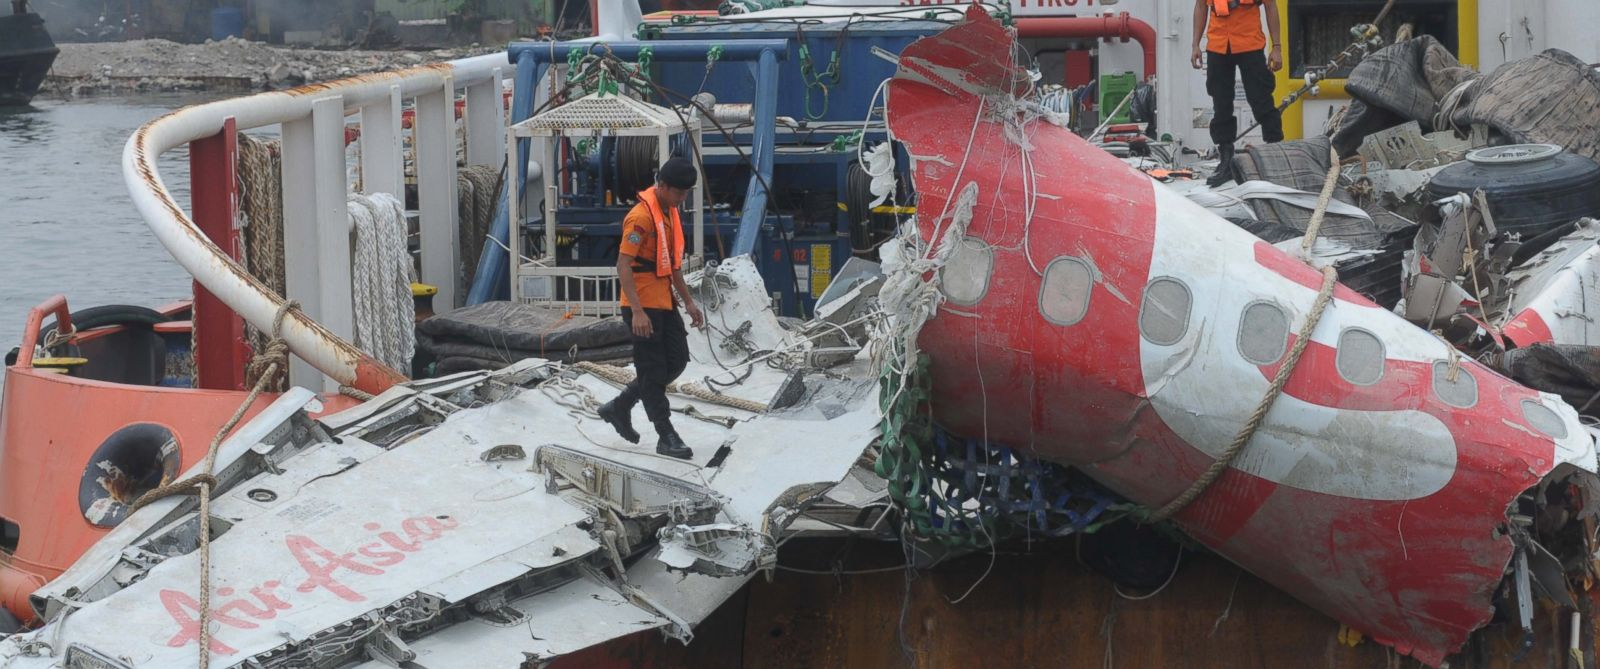 PHOTO:Indonesian rescuers stand next to the remains of crashed AirAsia flight QZ8501 on board of the Crest Onyx ship, after it was hoisted from the Java Sea during their recovery mission, March 2, 2015 in Jakarta, Indonesia.